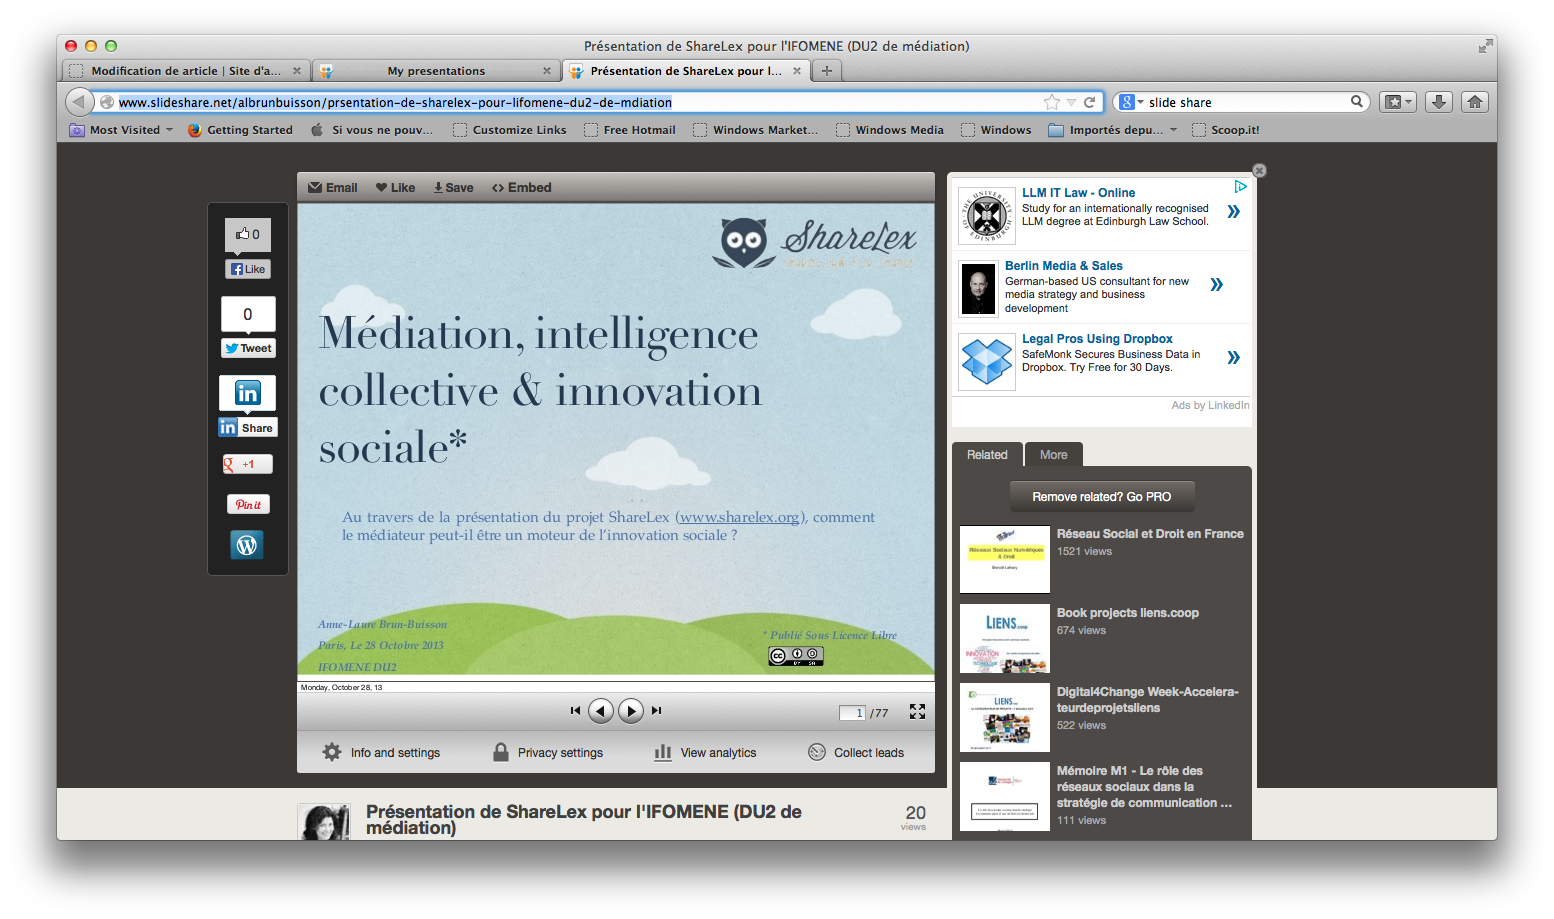 Médiation, intelligence collective et innovation sociale